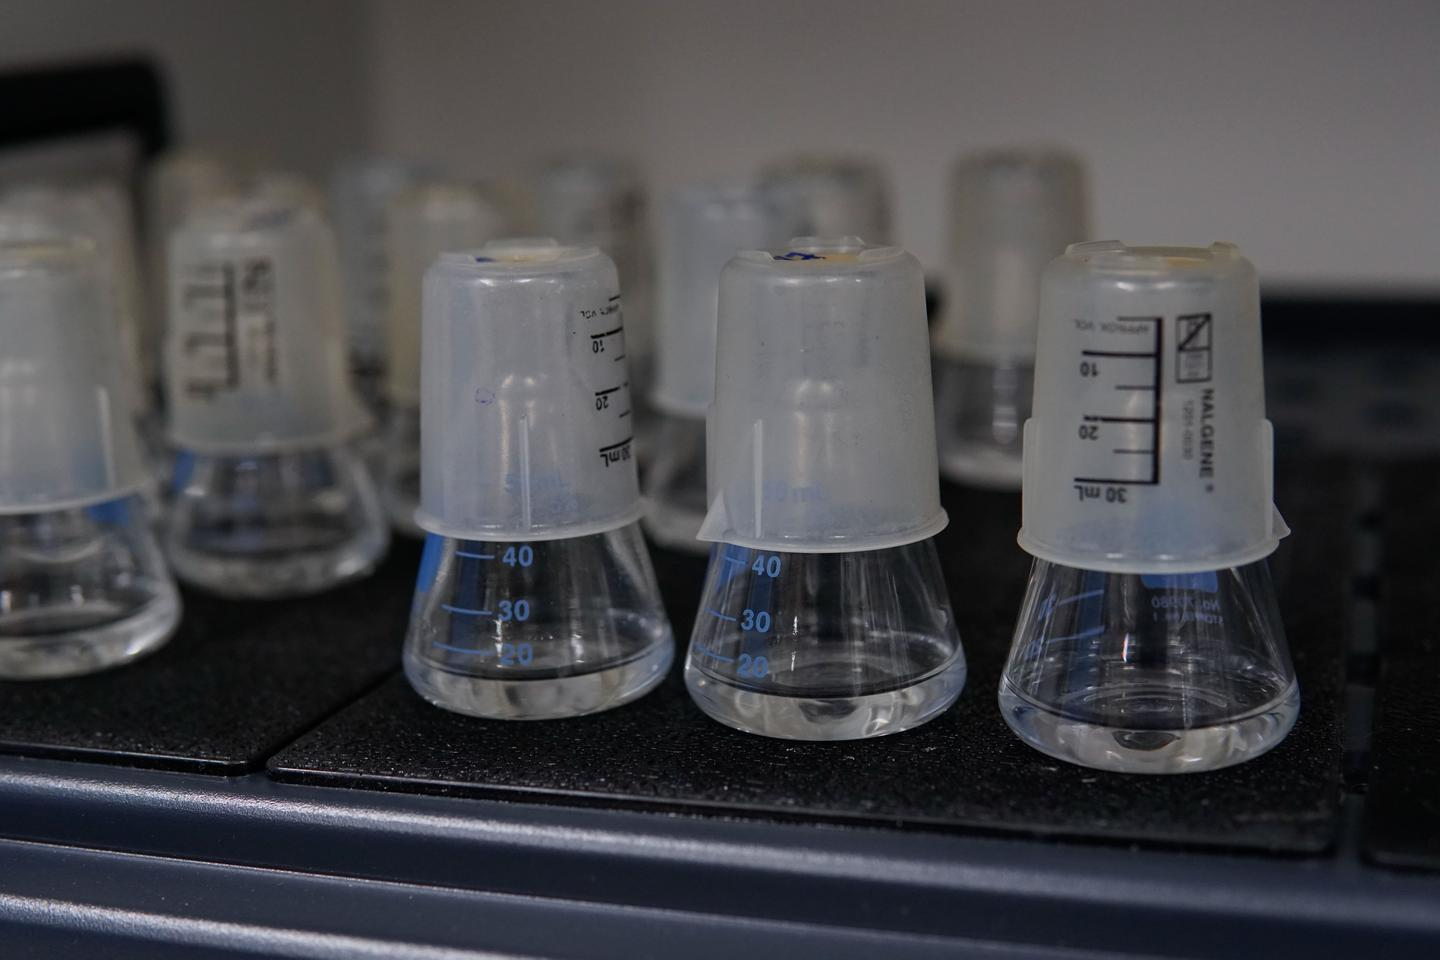 Phages, both trained and untrained, are pitted against bacteria in flasks in the lab